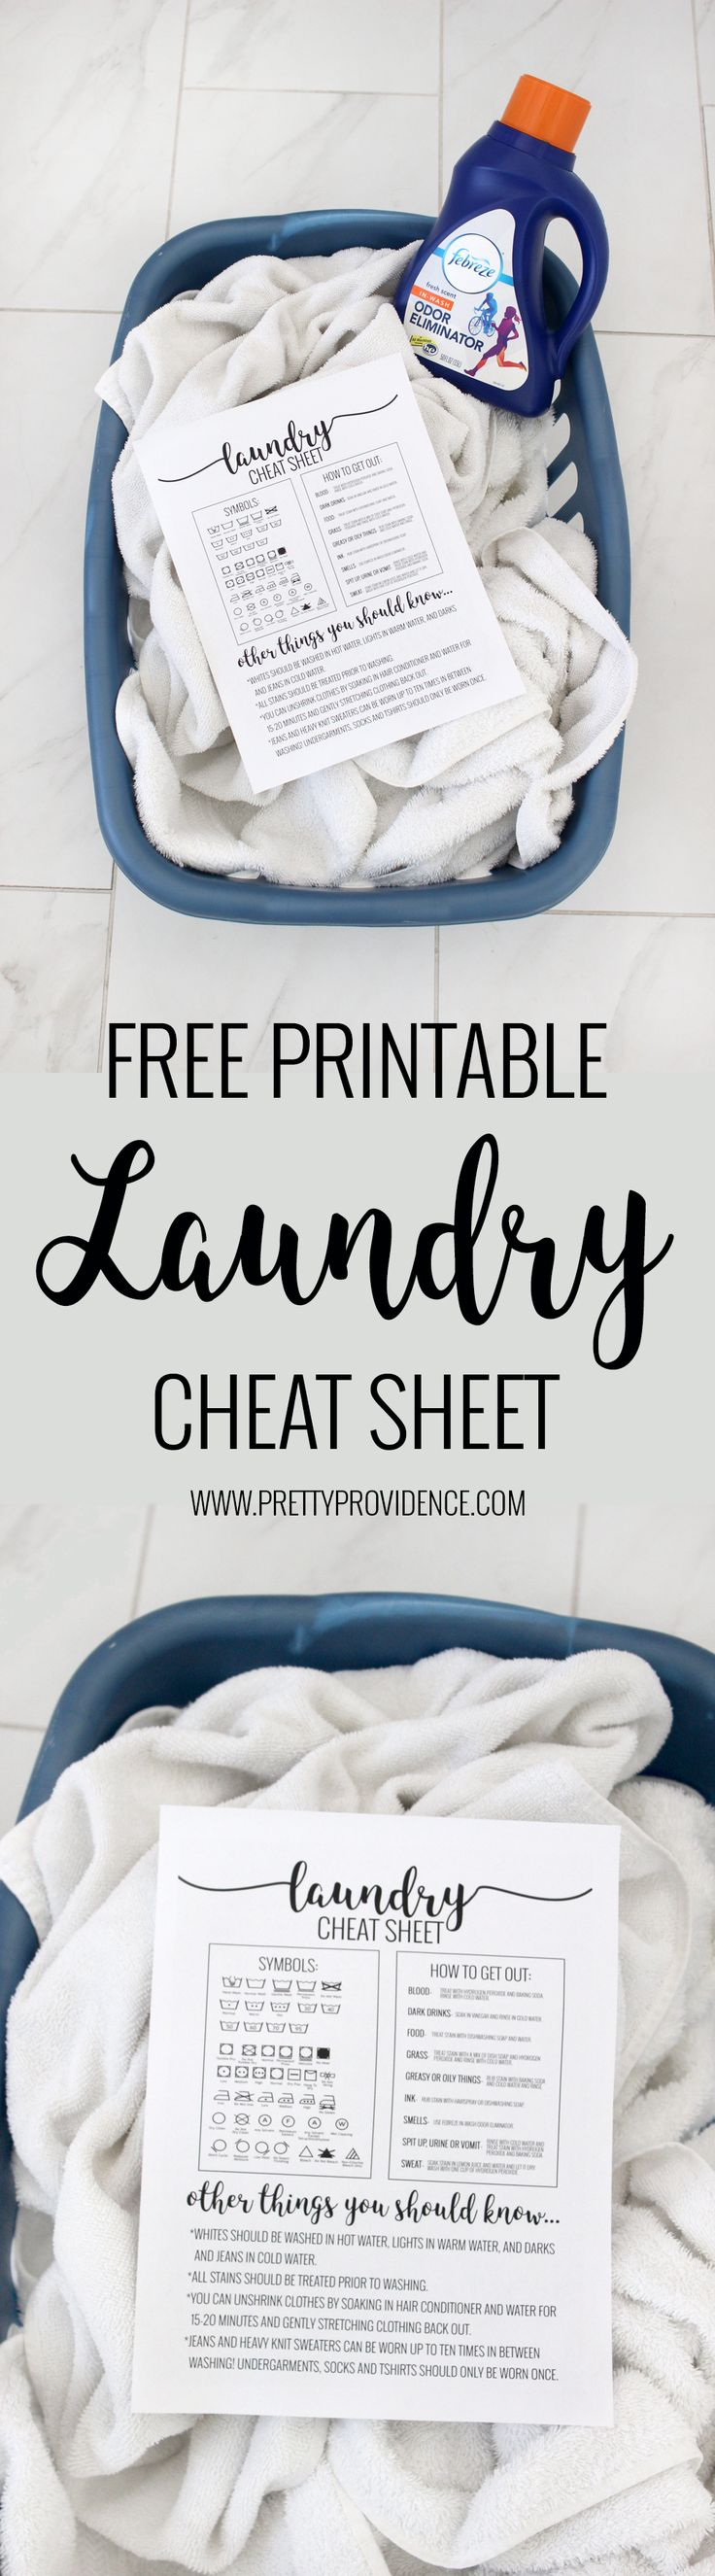 Okay this laundry cheat sheet is LIFE CHANGING! Super easy reference guide on how to get out virtually anything- and knowing what all the symbols mean at a glance! Must save. #stayfresh #sponsored #laundry